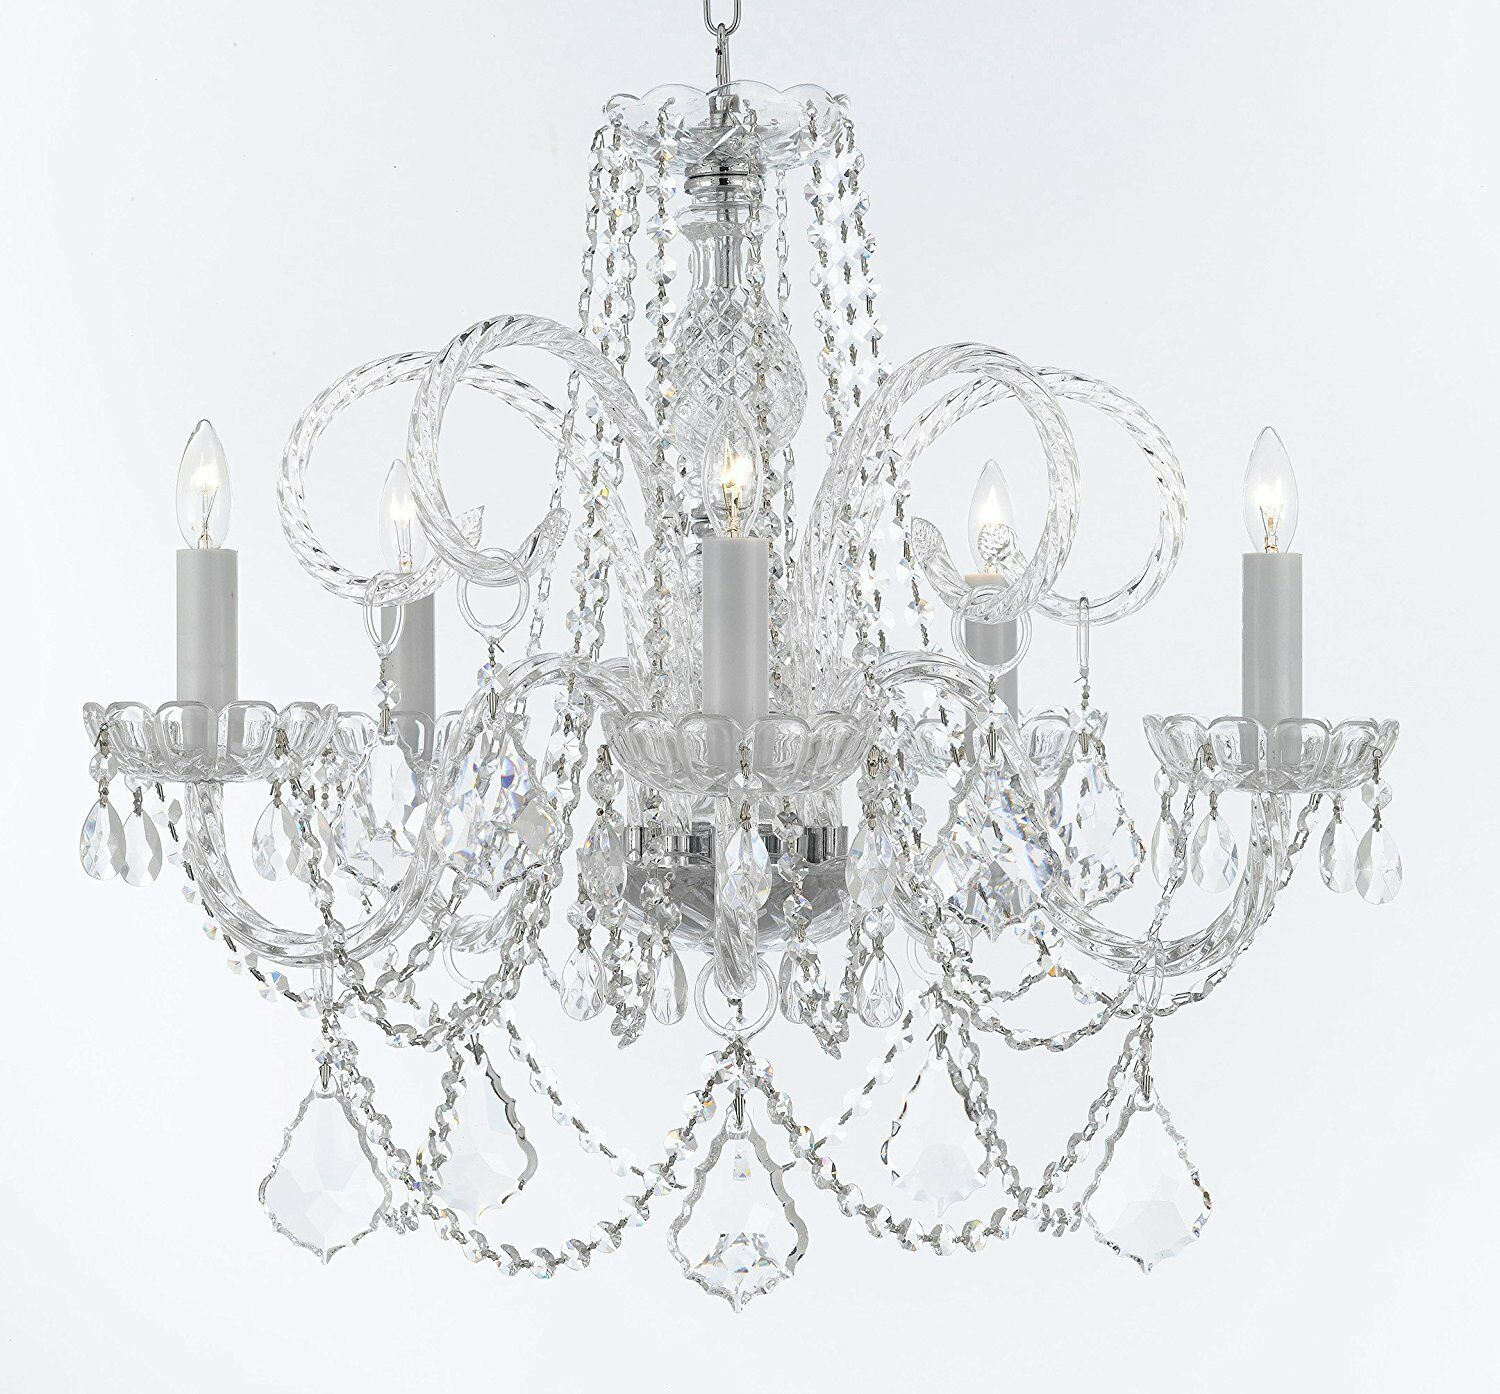 Creeves Hanging 5-Light Candle Style Chandelier